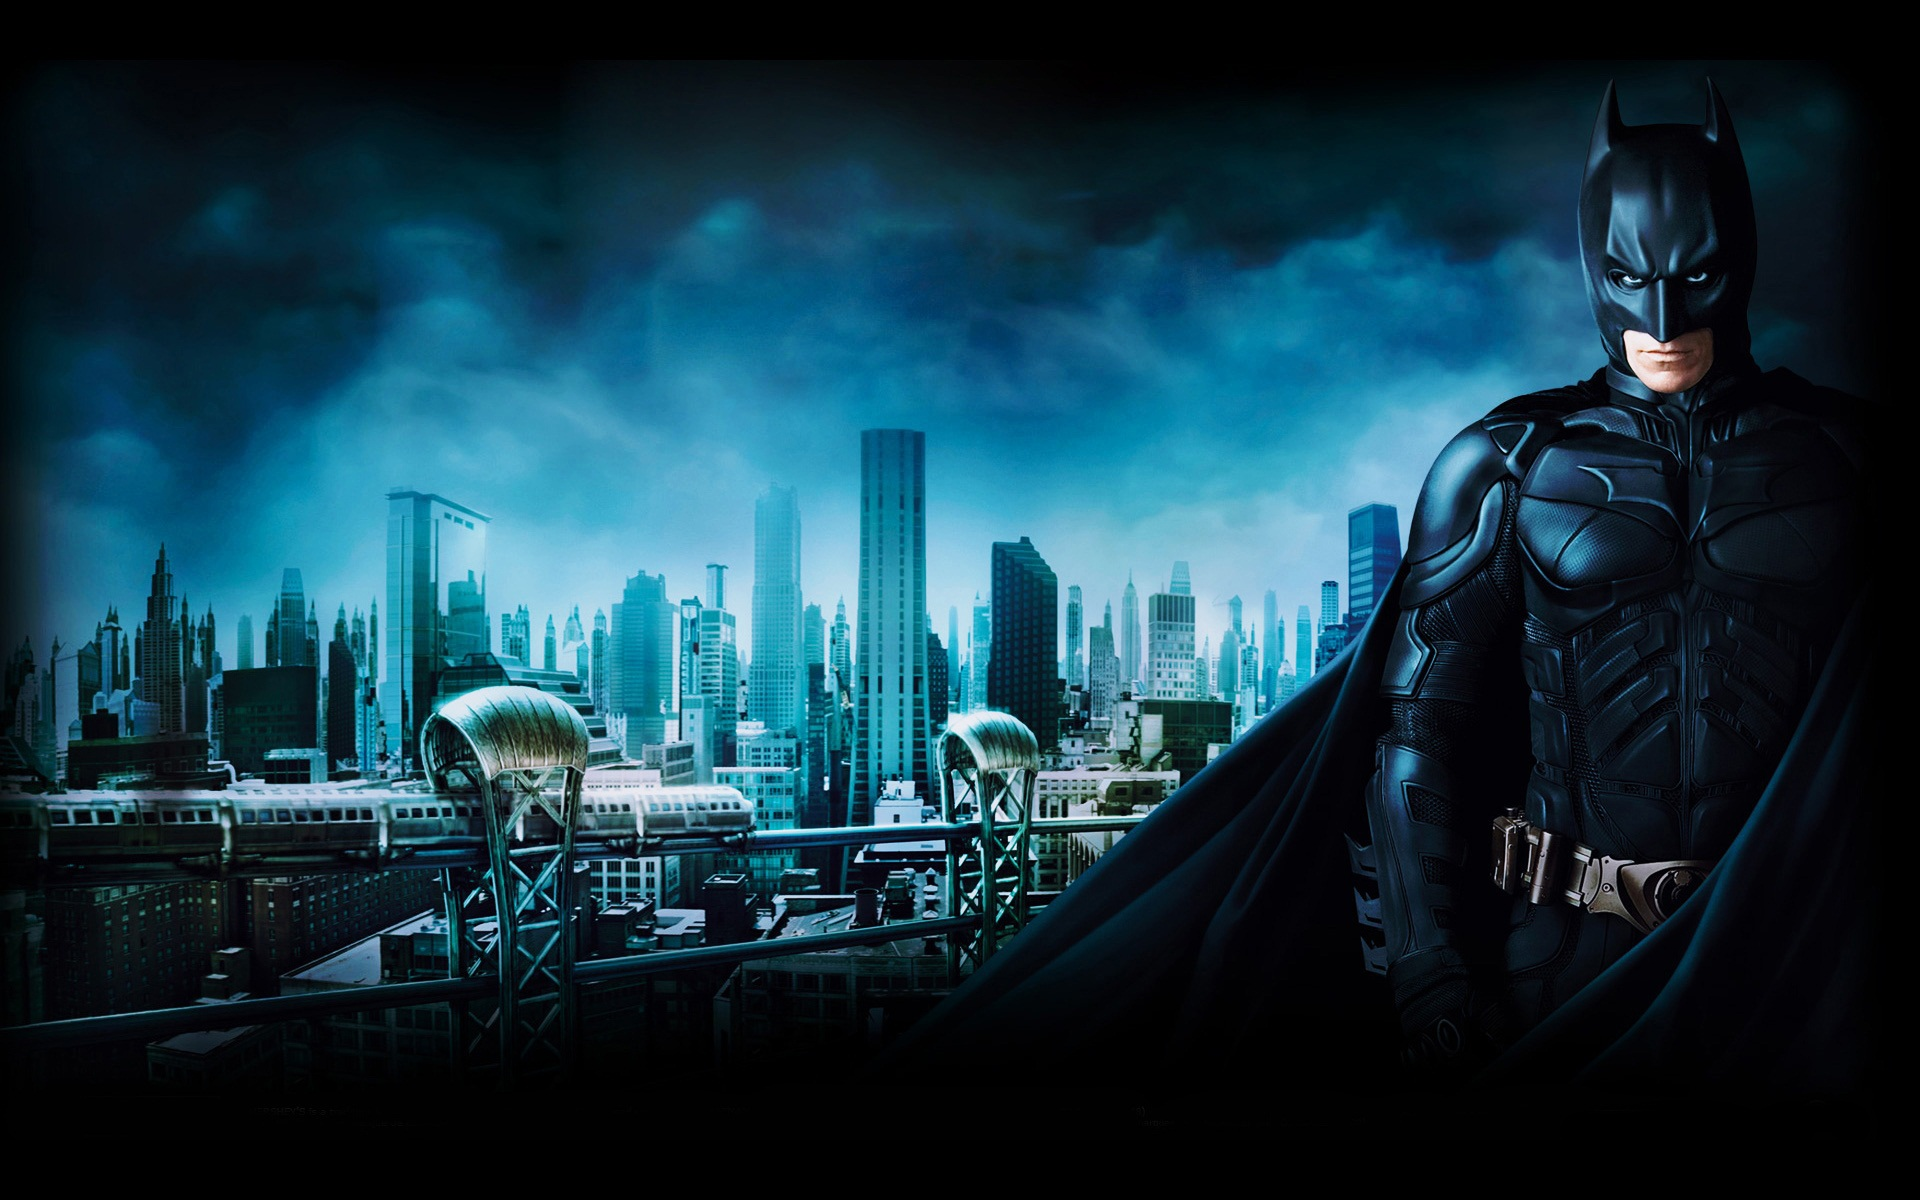 Batman 3 Gotham City Wallpapers HD Wallpapers 1920x1200